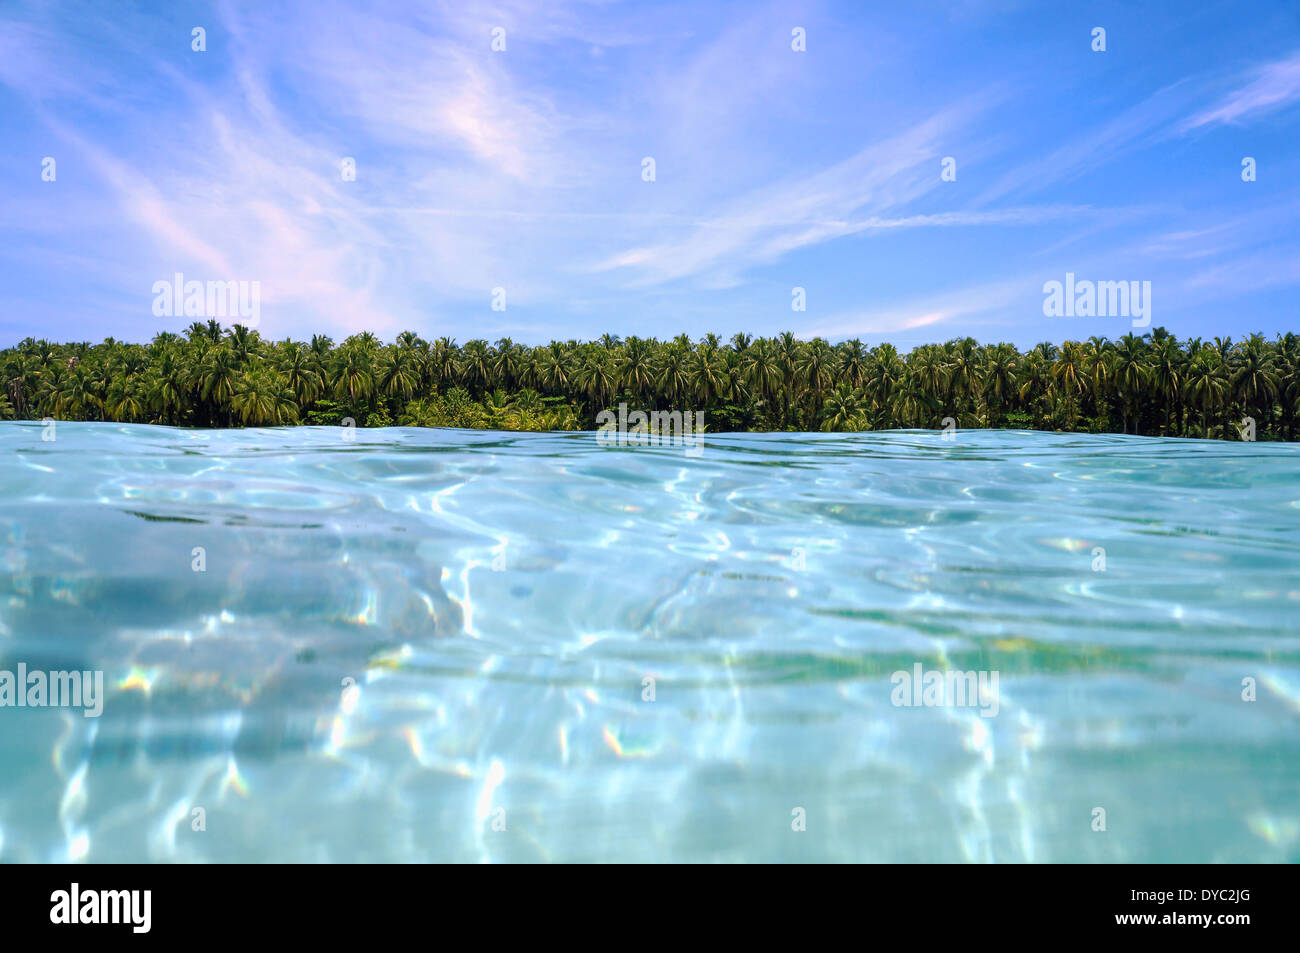 Coconut trees horizon from the water surface - Stock Image